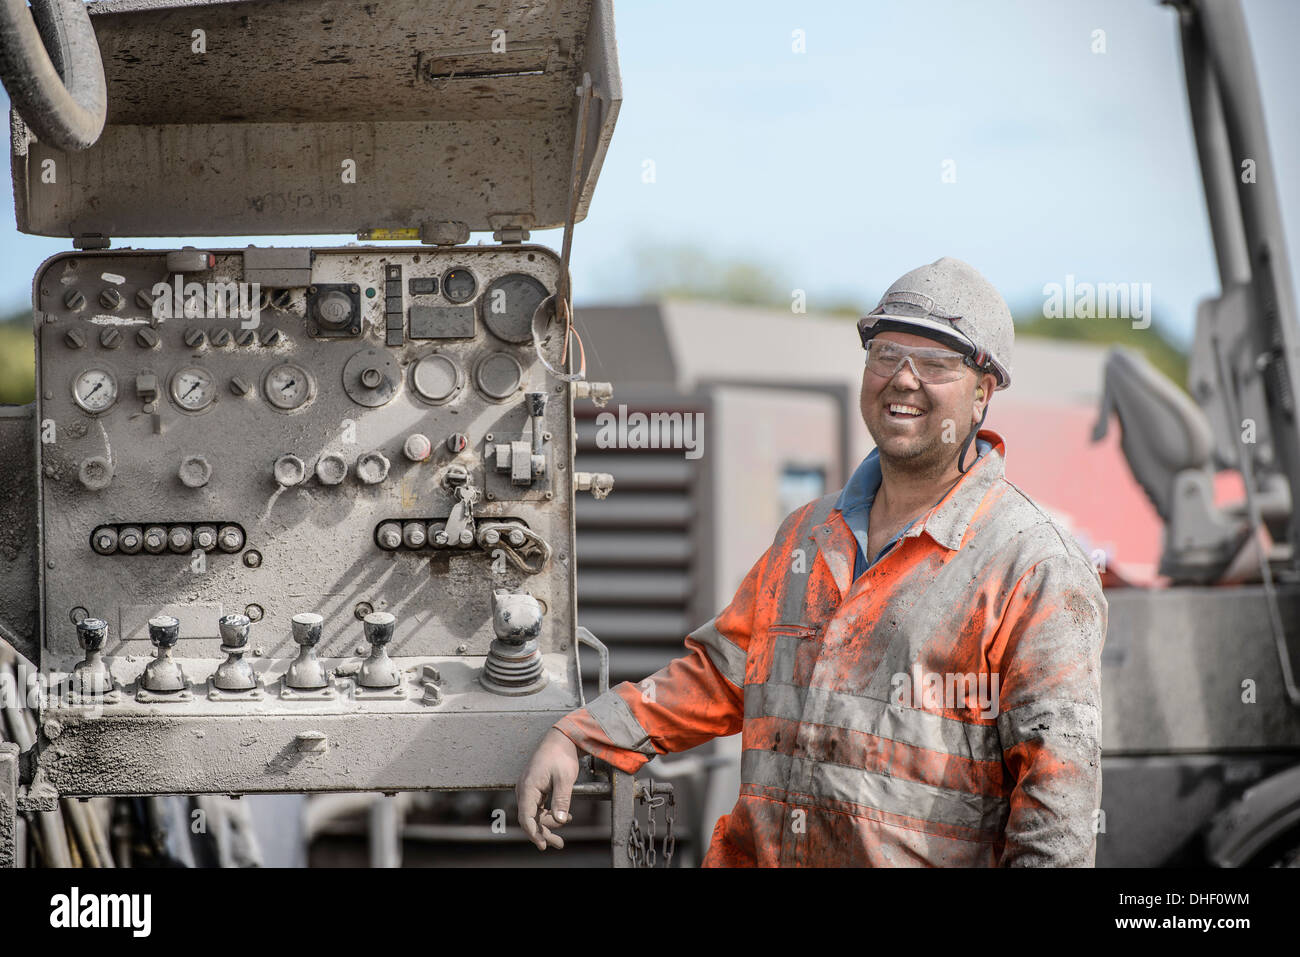 Drilling rig worker in hard hat and workwear, smiling - Stock Image